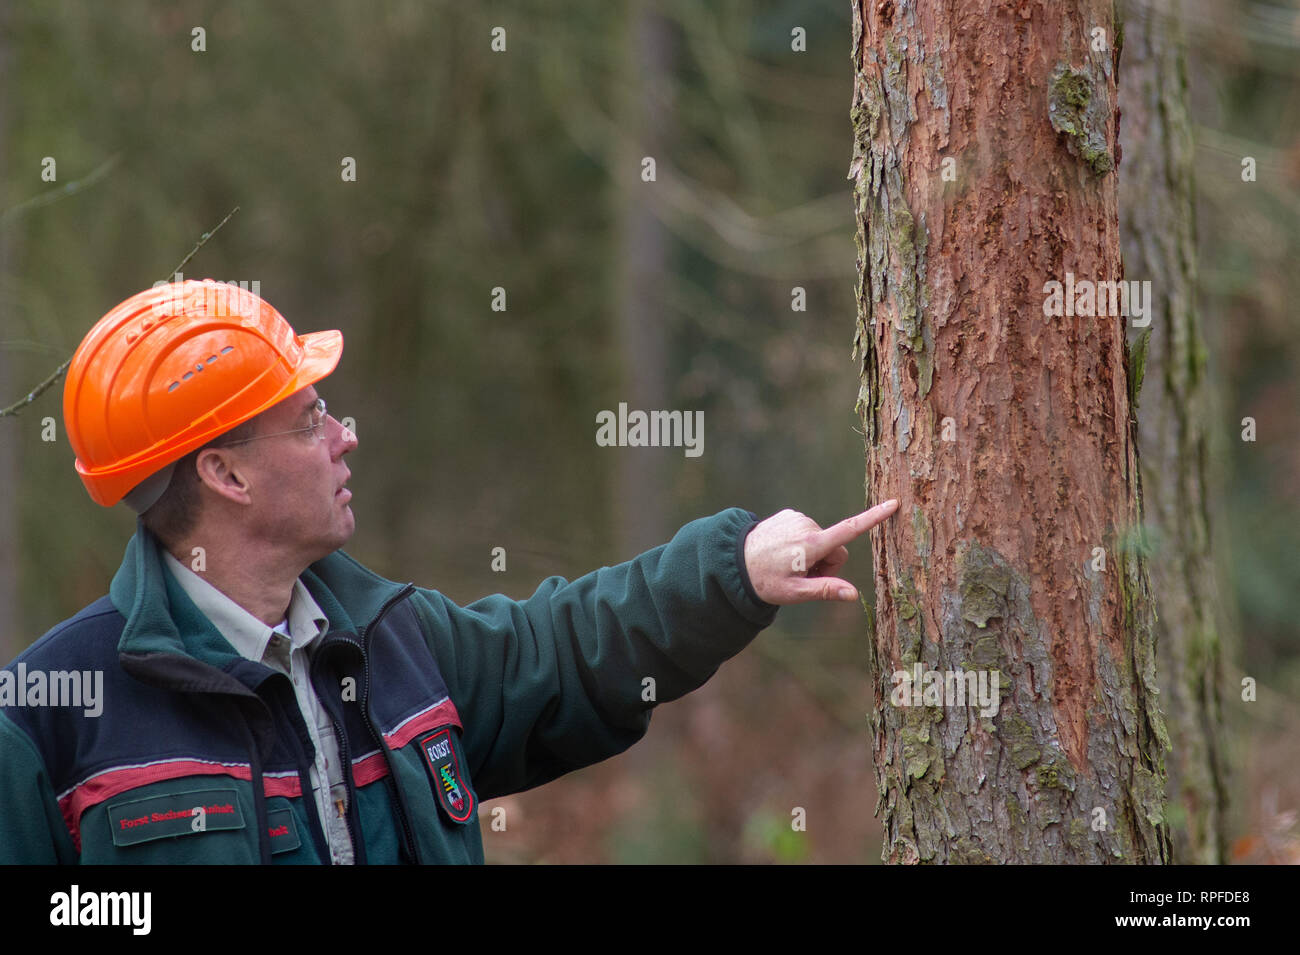 21 February 2019, Saxony-Anhalt, Flechtingen: Thomas Roßbach, head of the forestry office of the Landeszentrum Wald Sachsen-Anhalt, is investigating a larch which is infested by the larch bark beetle and whose bark has been damaged as a result. At present, sick conifers are being cleared near Flechtingen in order to counteract mass propagation of the pests. The foresters of the Landeszentrum Wald Sachsen-Anhalt attribute the damage to the coniferous forests to the drought in 2018. After the sick trees have been cleared, they are to be reforested with climate-resistant and site-suitable tree sp - Stock Image